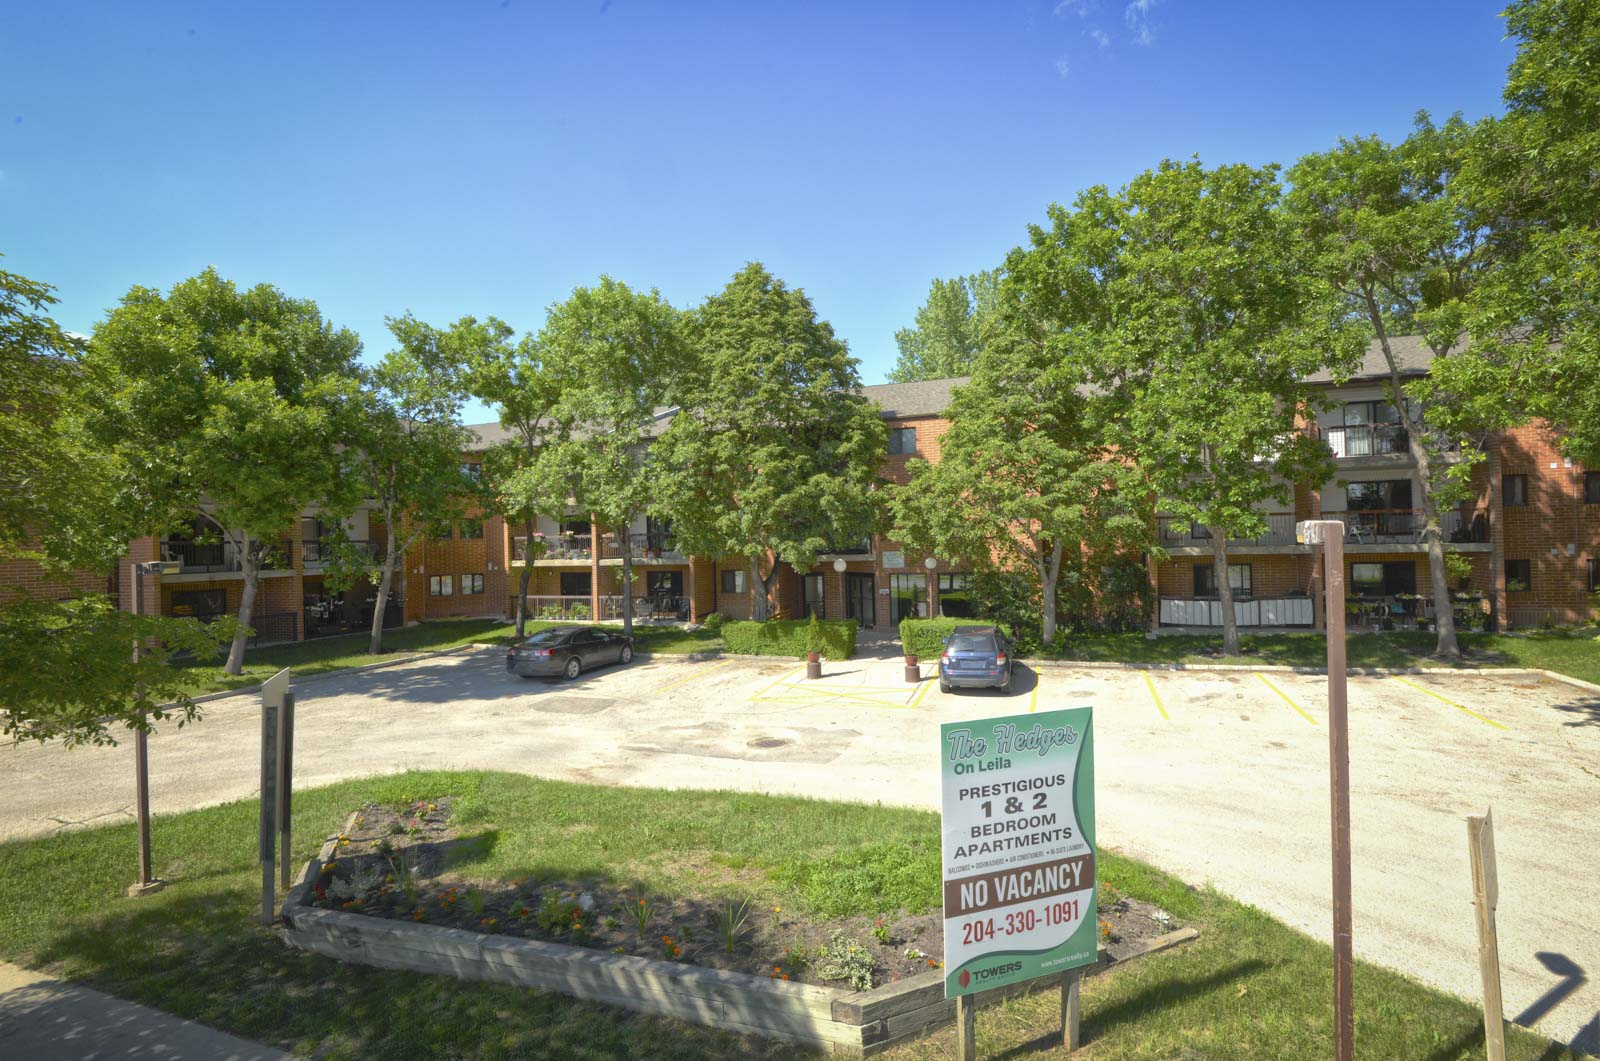 Apartments for rent Winnipeg - The Hedges - 707 Leila Ave